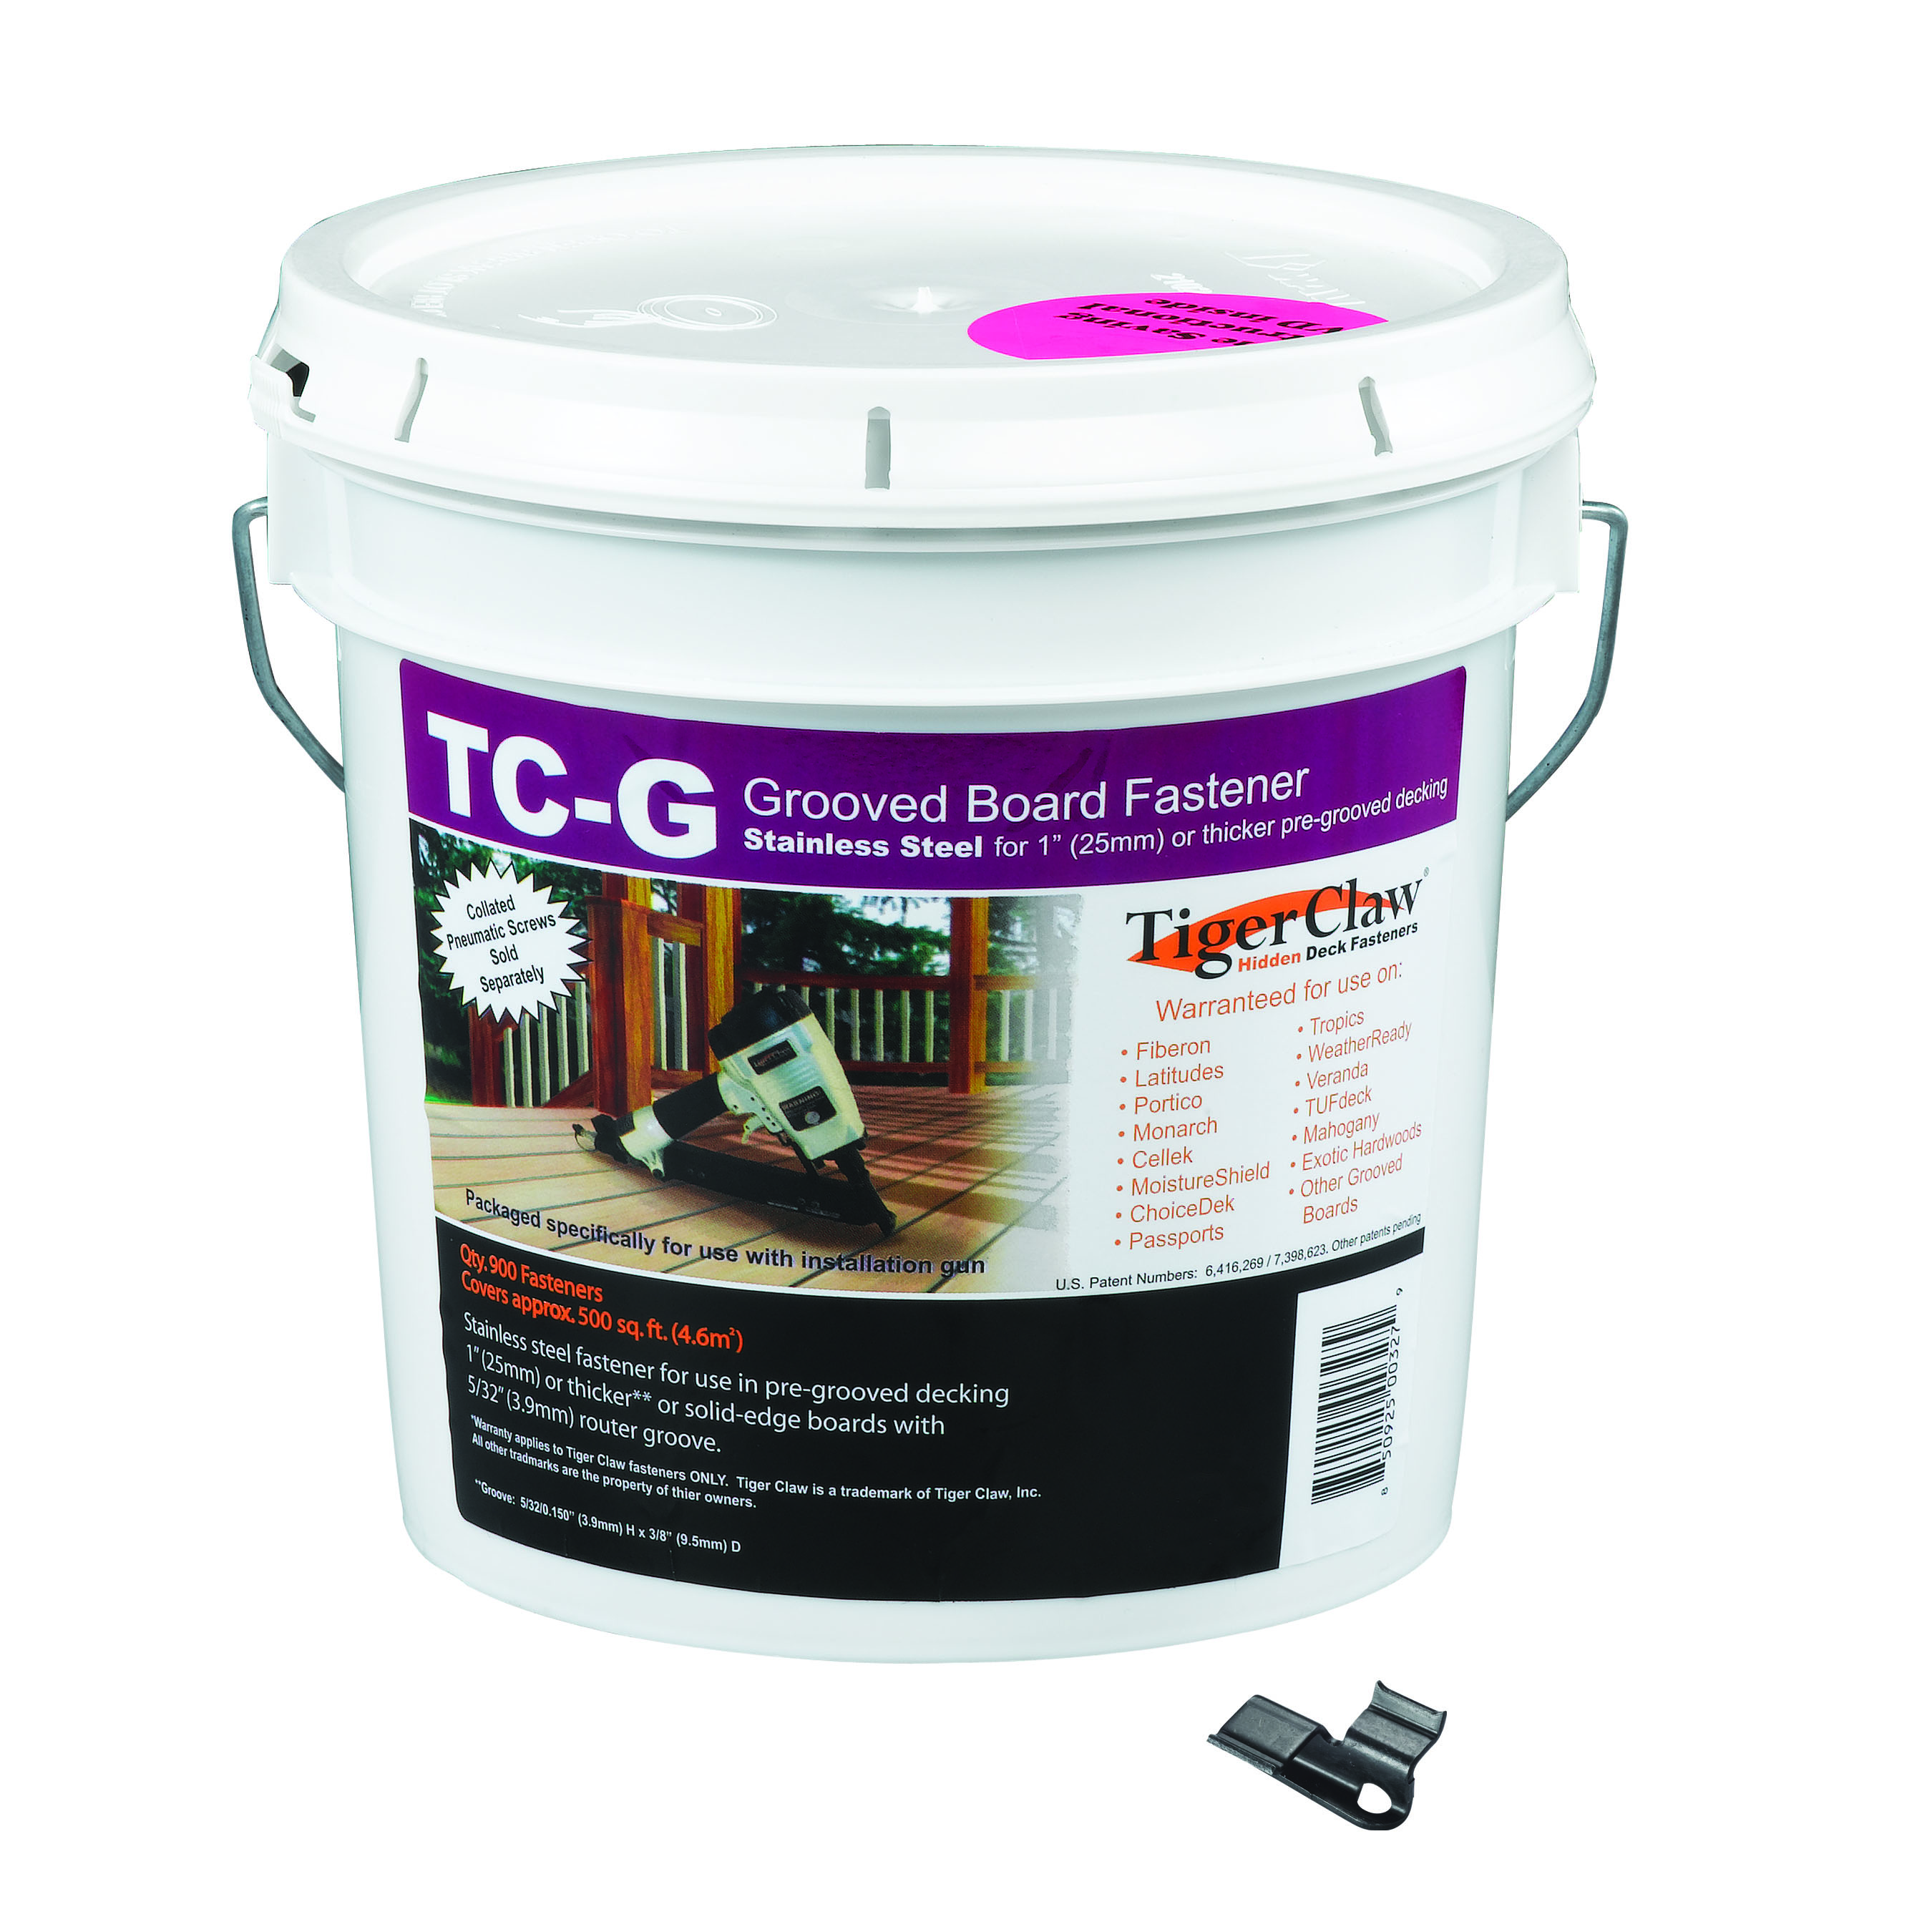 Tiger Claw TC-G 900 piece pail for grooved boards